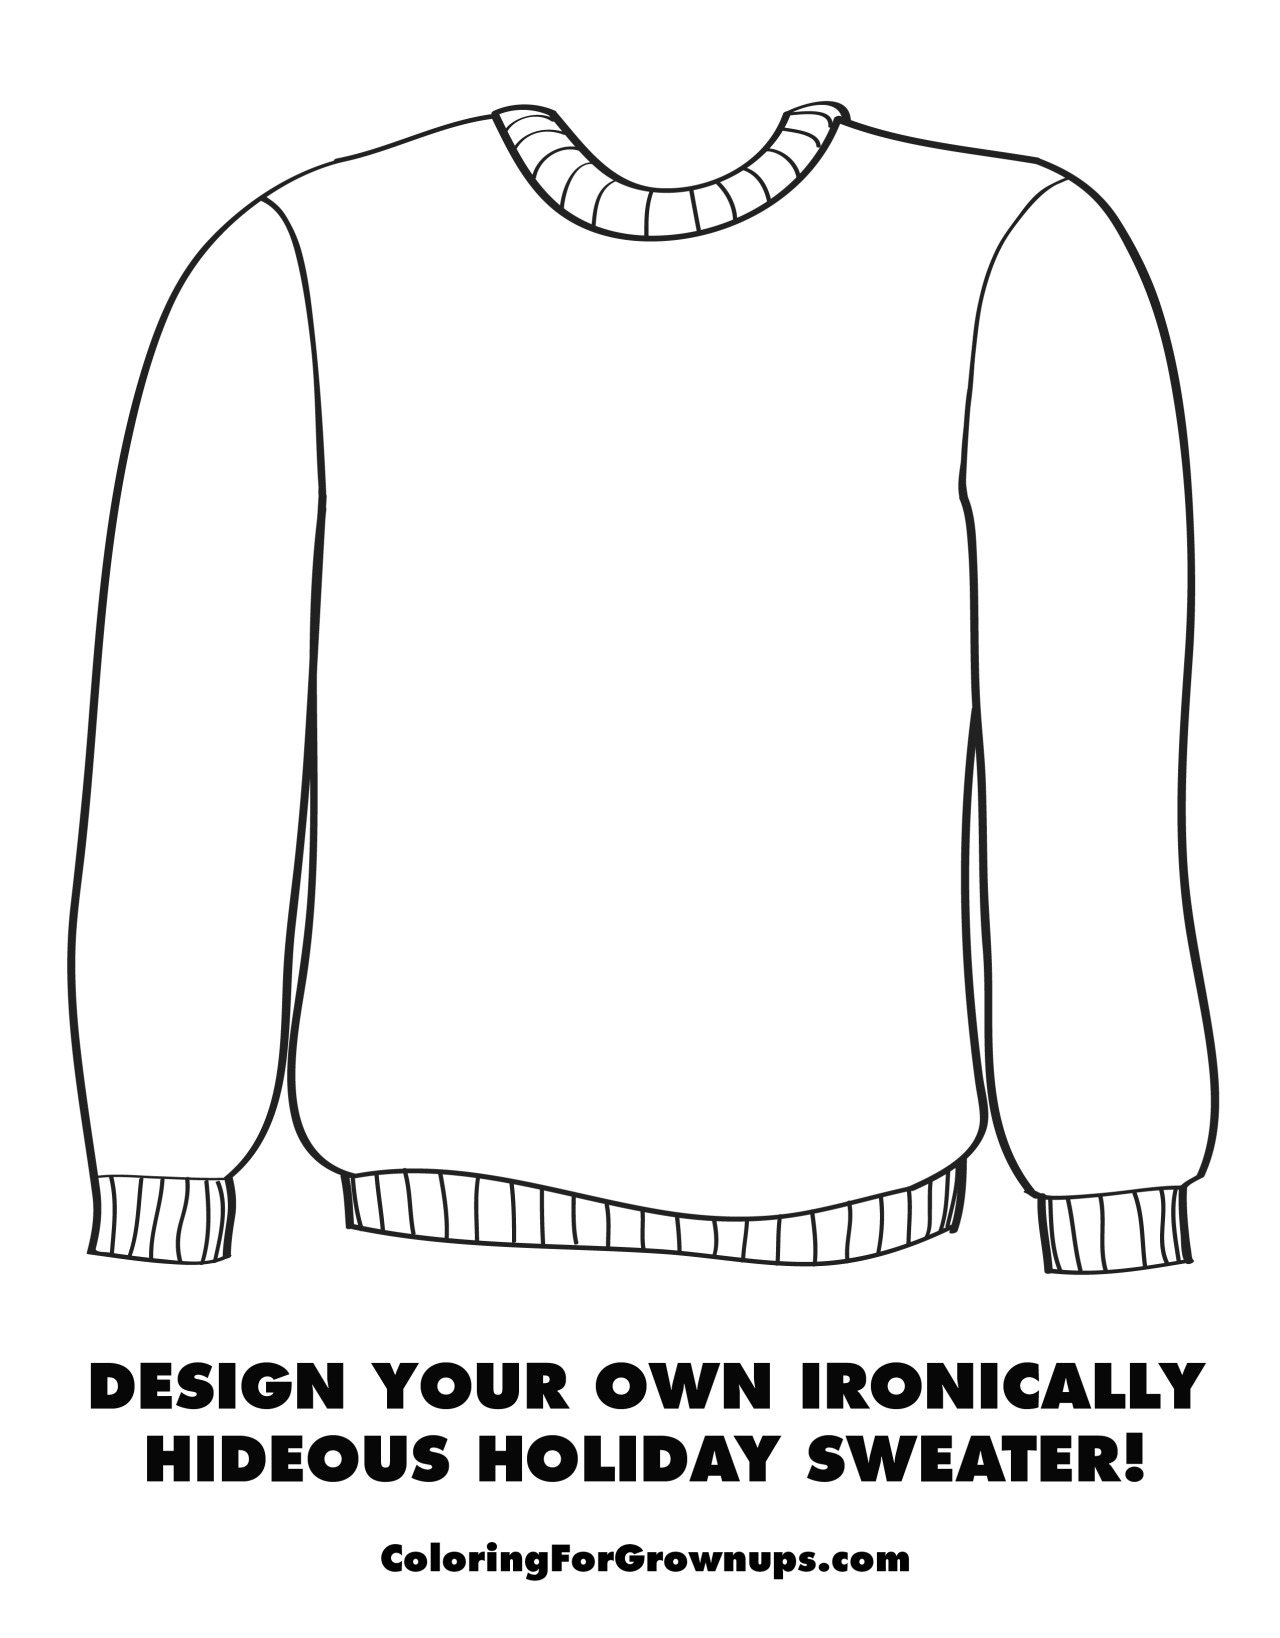 OT Life — coloringforgrownups: Design Your Own Ironically...